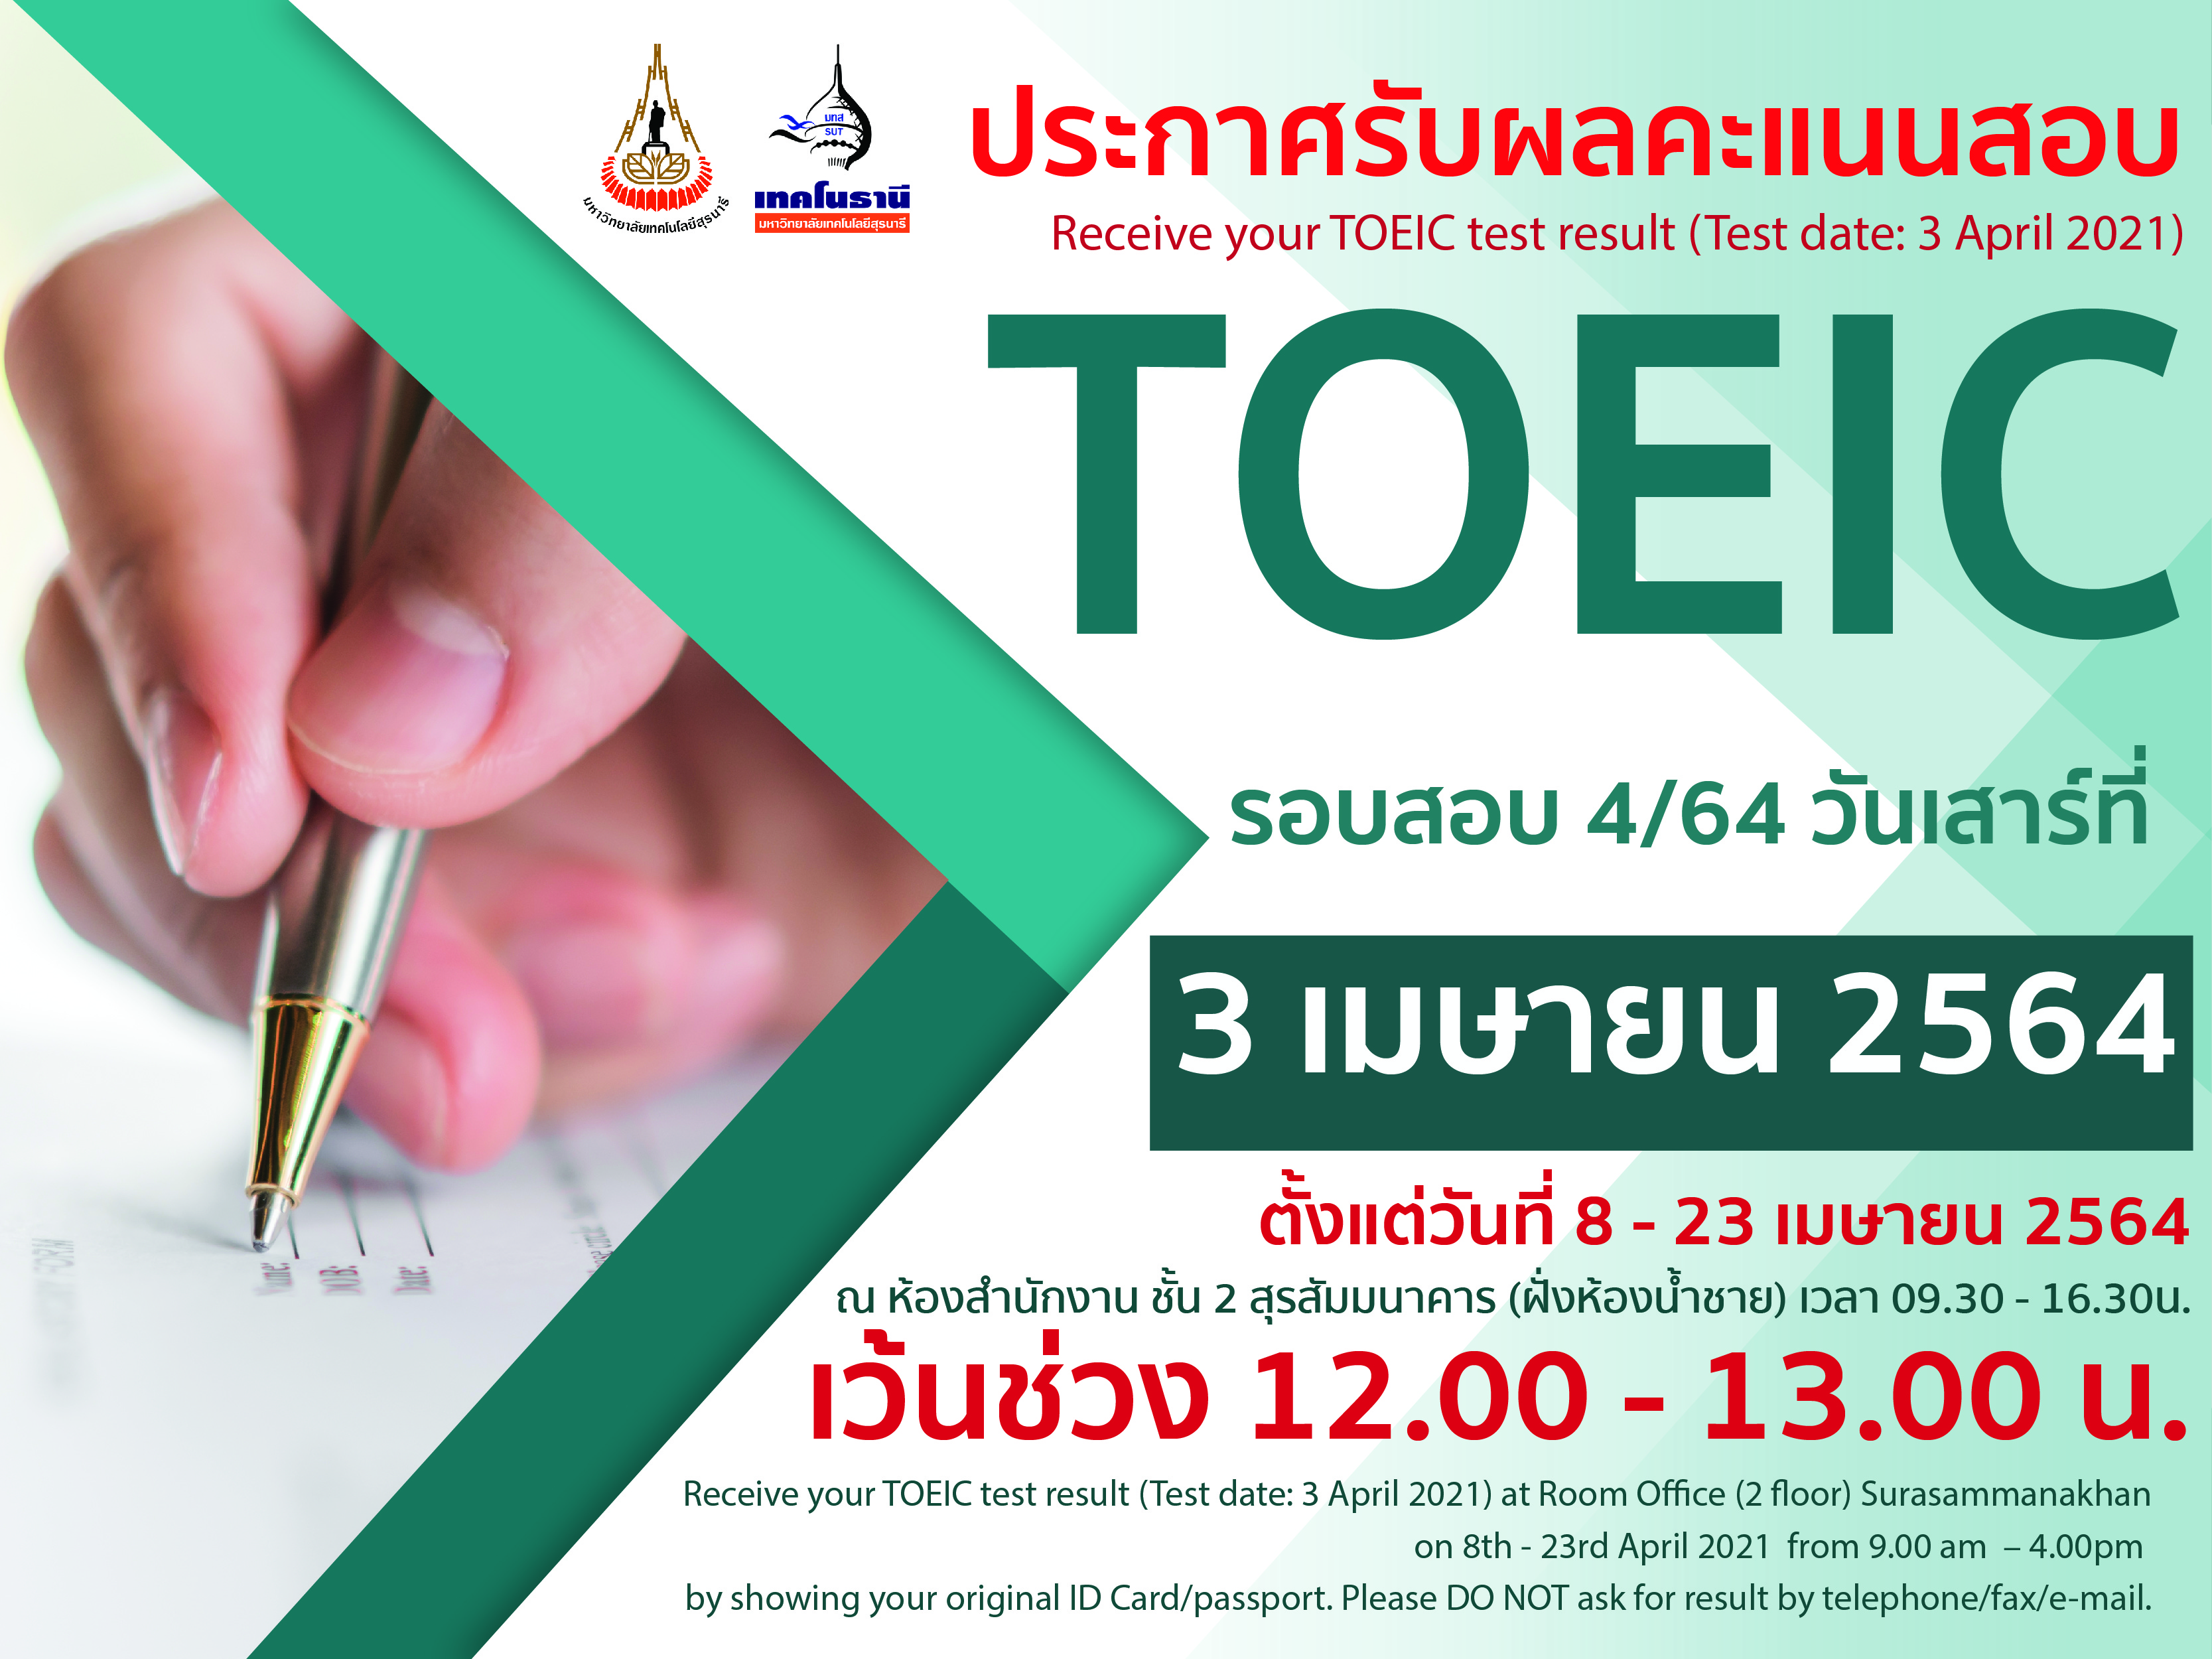 Receive your TOEIC test result (Test date: 3 April 2021)